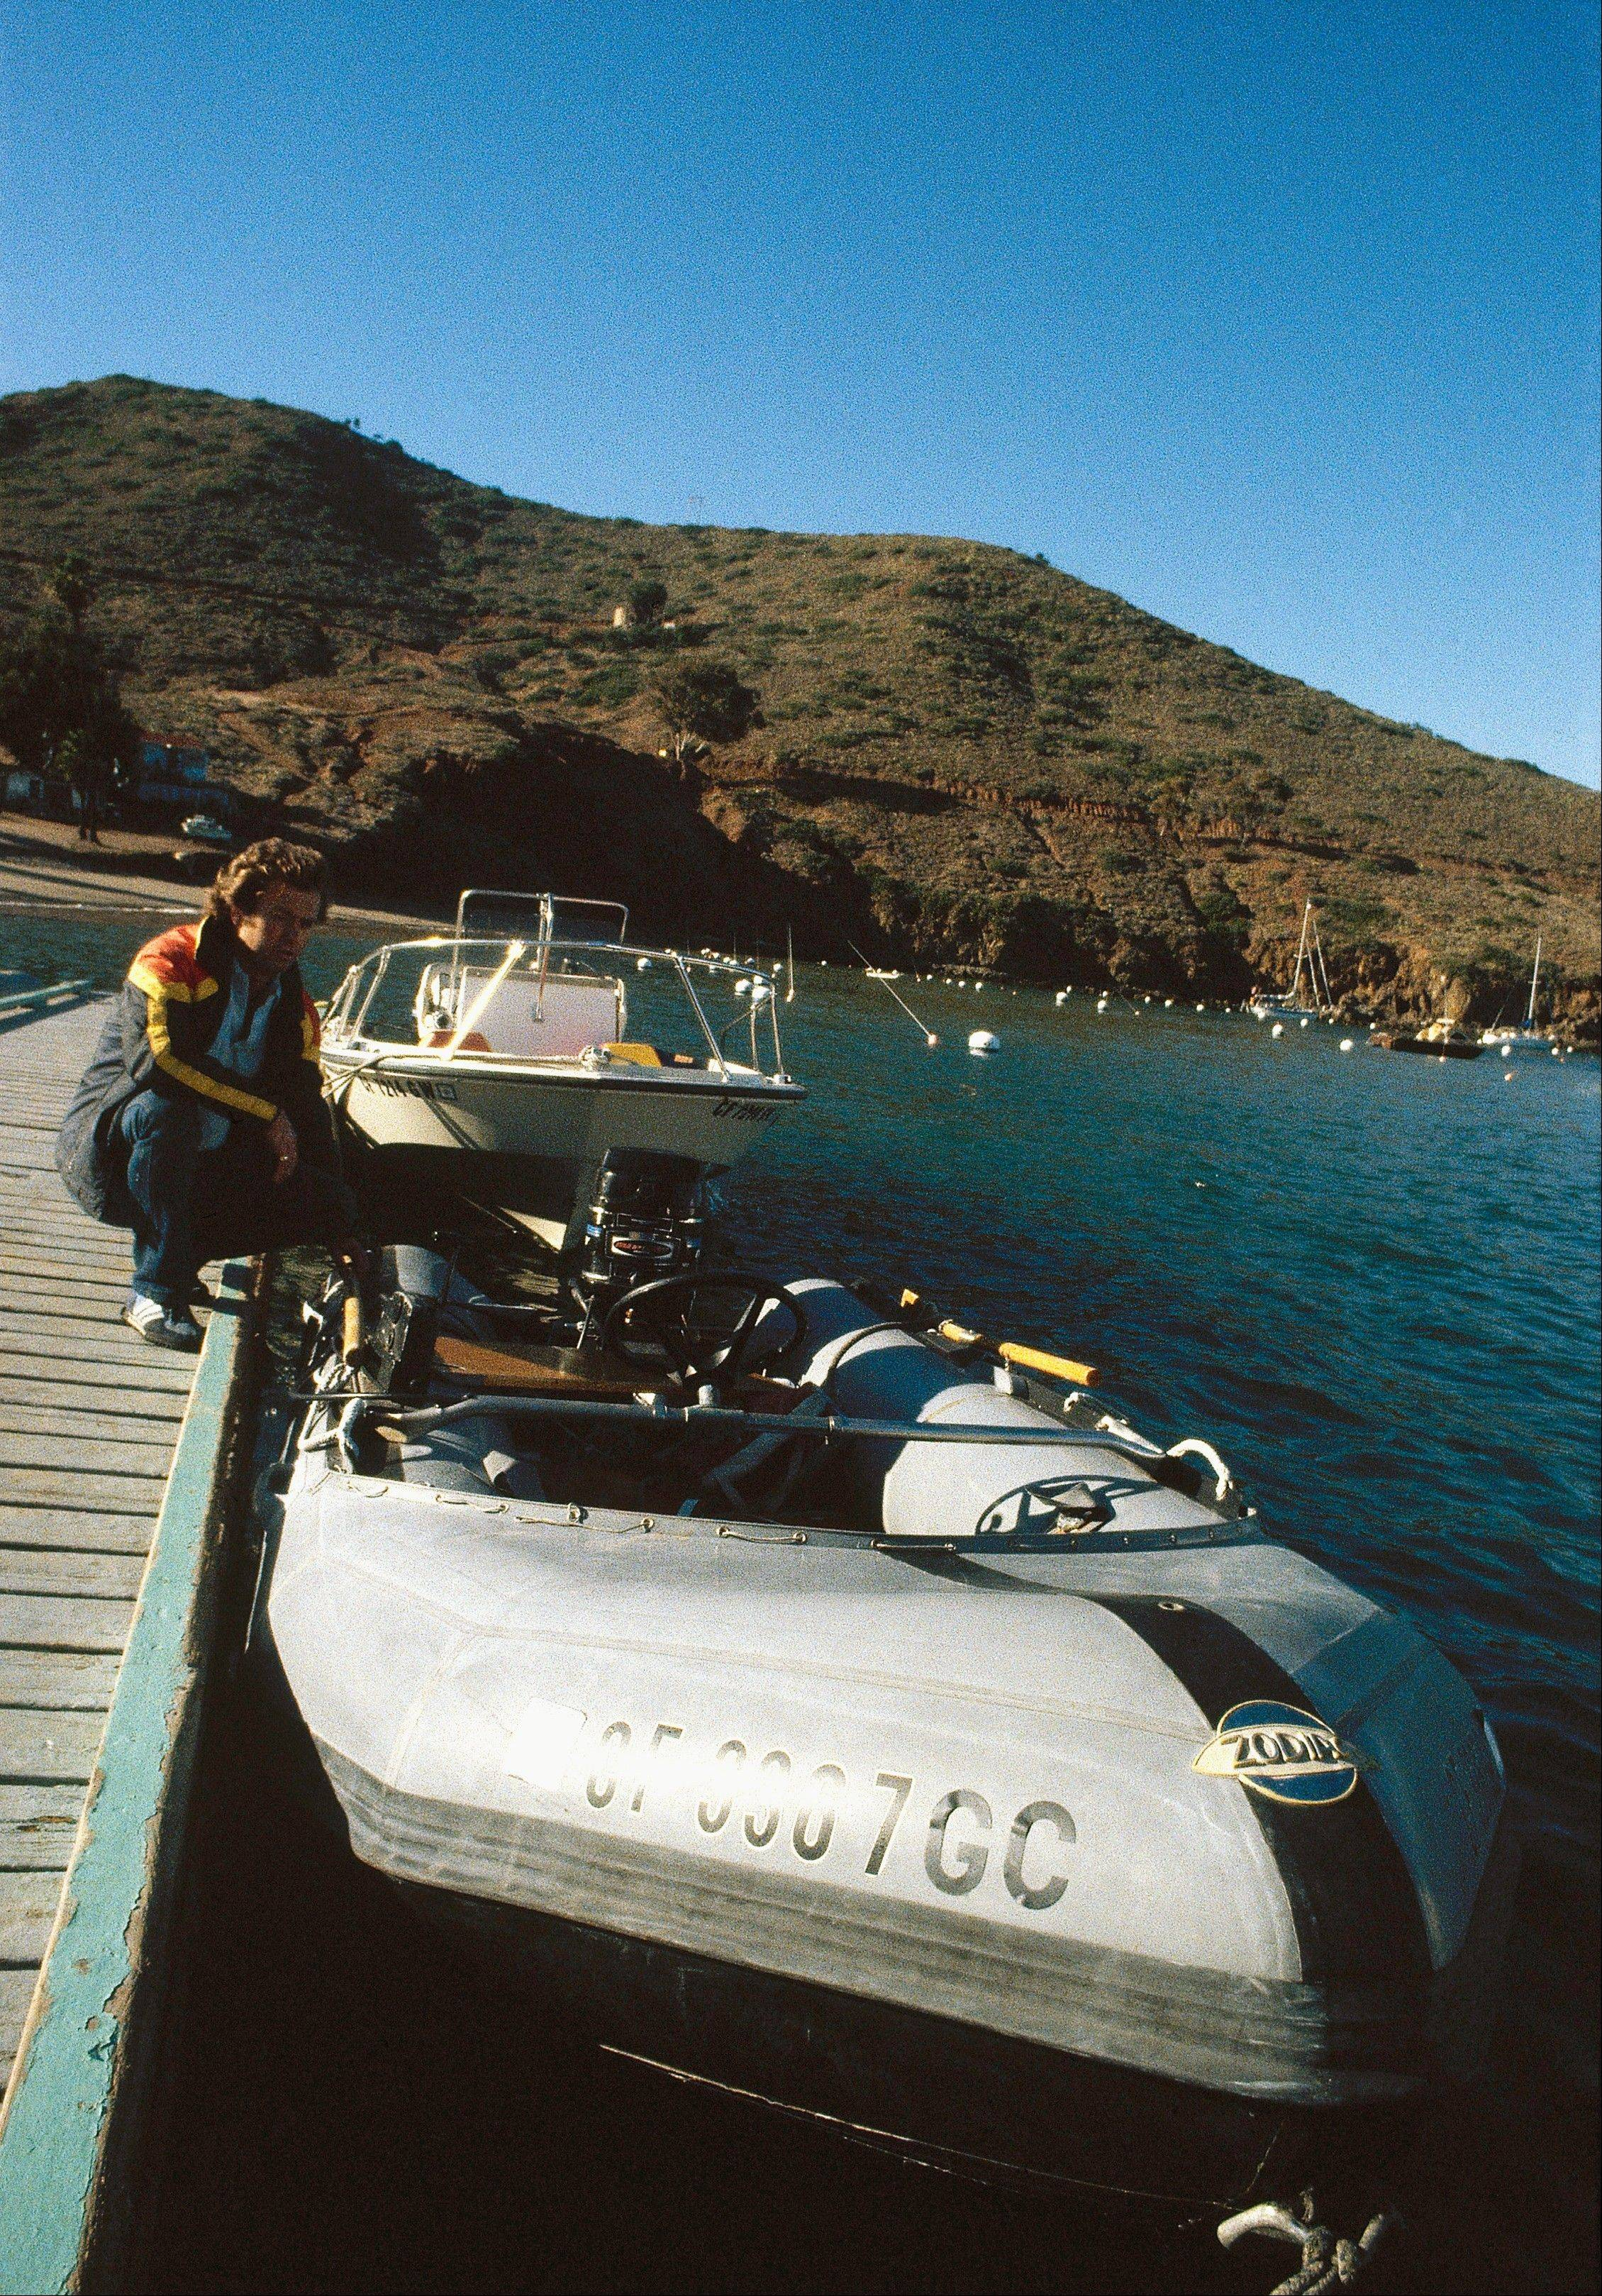 "In a Nov. 28, 1981 file photo, ""Prince Valiant,"" the inflatable dinghy used by 34-year-old actress Natalie Wood on the yacht Splendour, sits pierside in Catalina Island, Calif. Yacht captain Dennis Davern said on national TV Friday, Nov. 18, 2011 that he lied to investigators about Natalie Wood's mysterious death 30 years ago and blames the actress' husband at the time, Robert Wagner, for her drowning in the ocean off Southern California. (AP Photo/Harrington, File)"